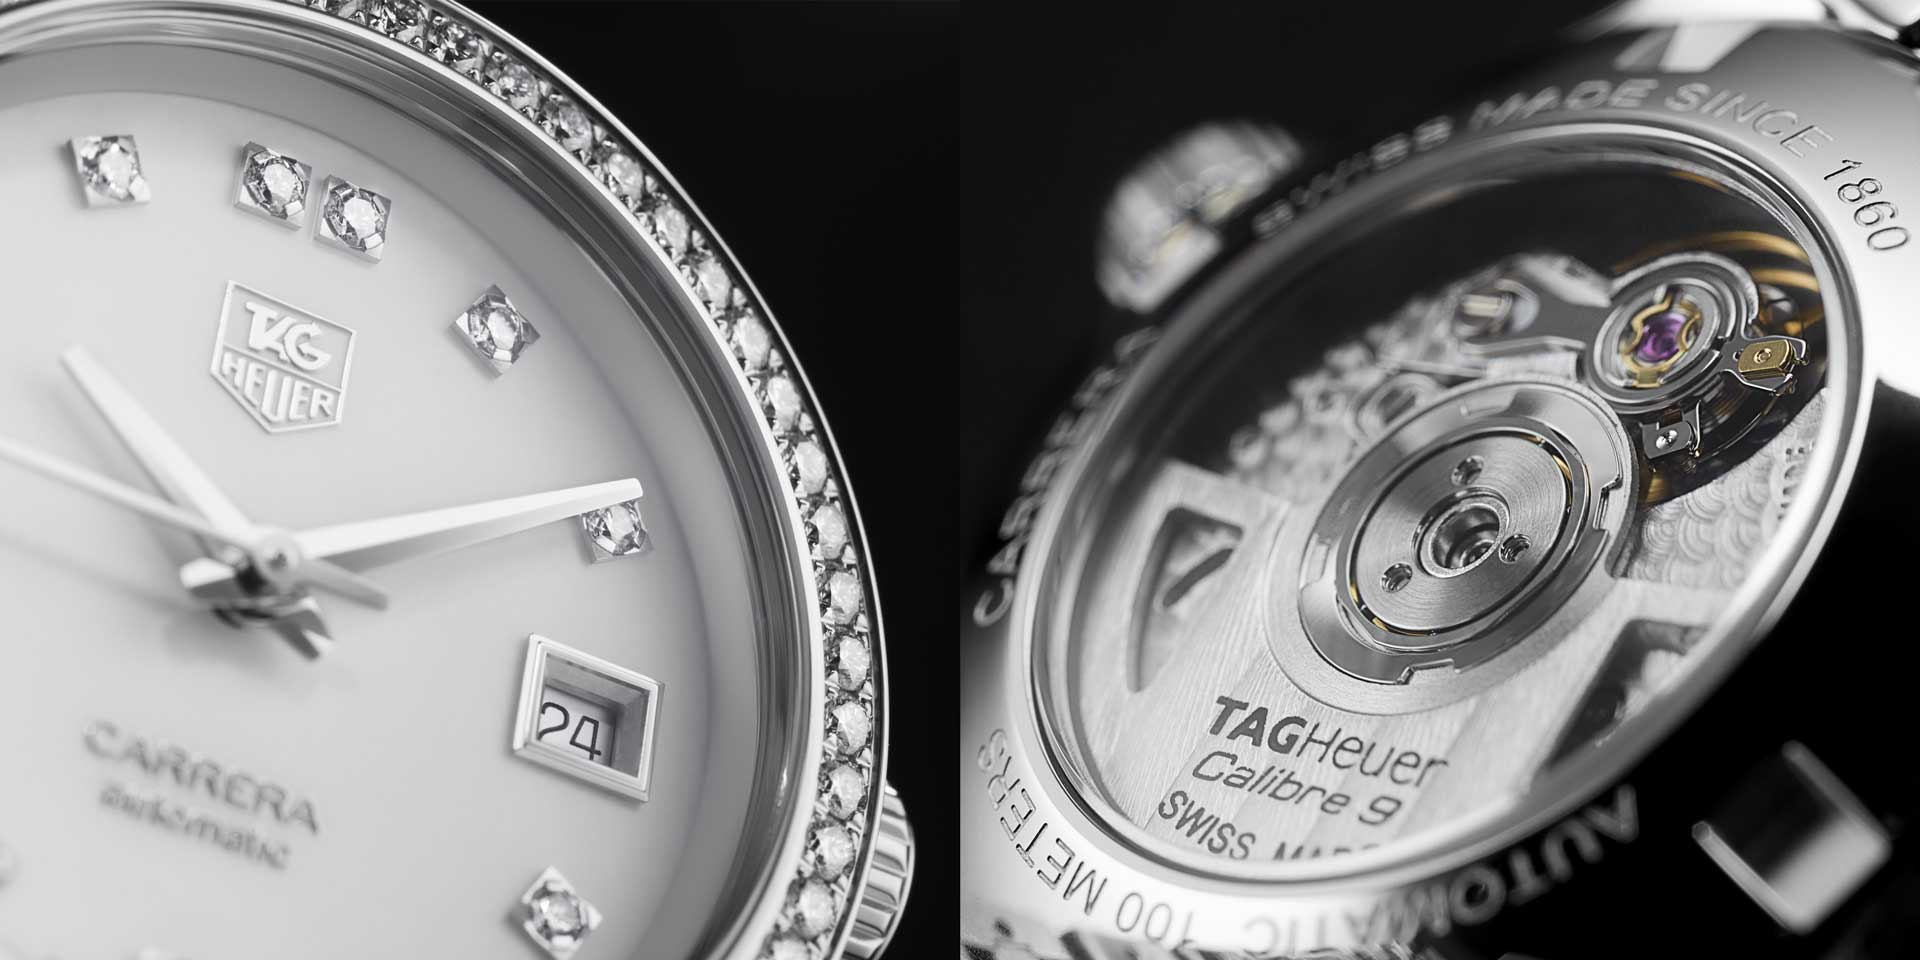 CARRERA Ladies Calibre 9 - feature